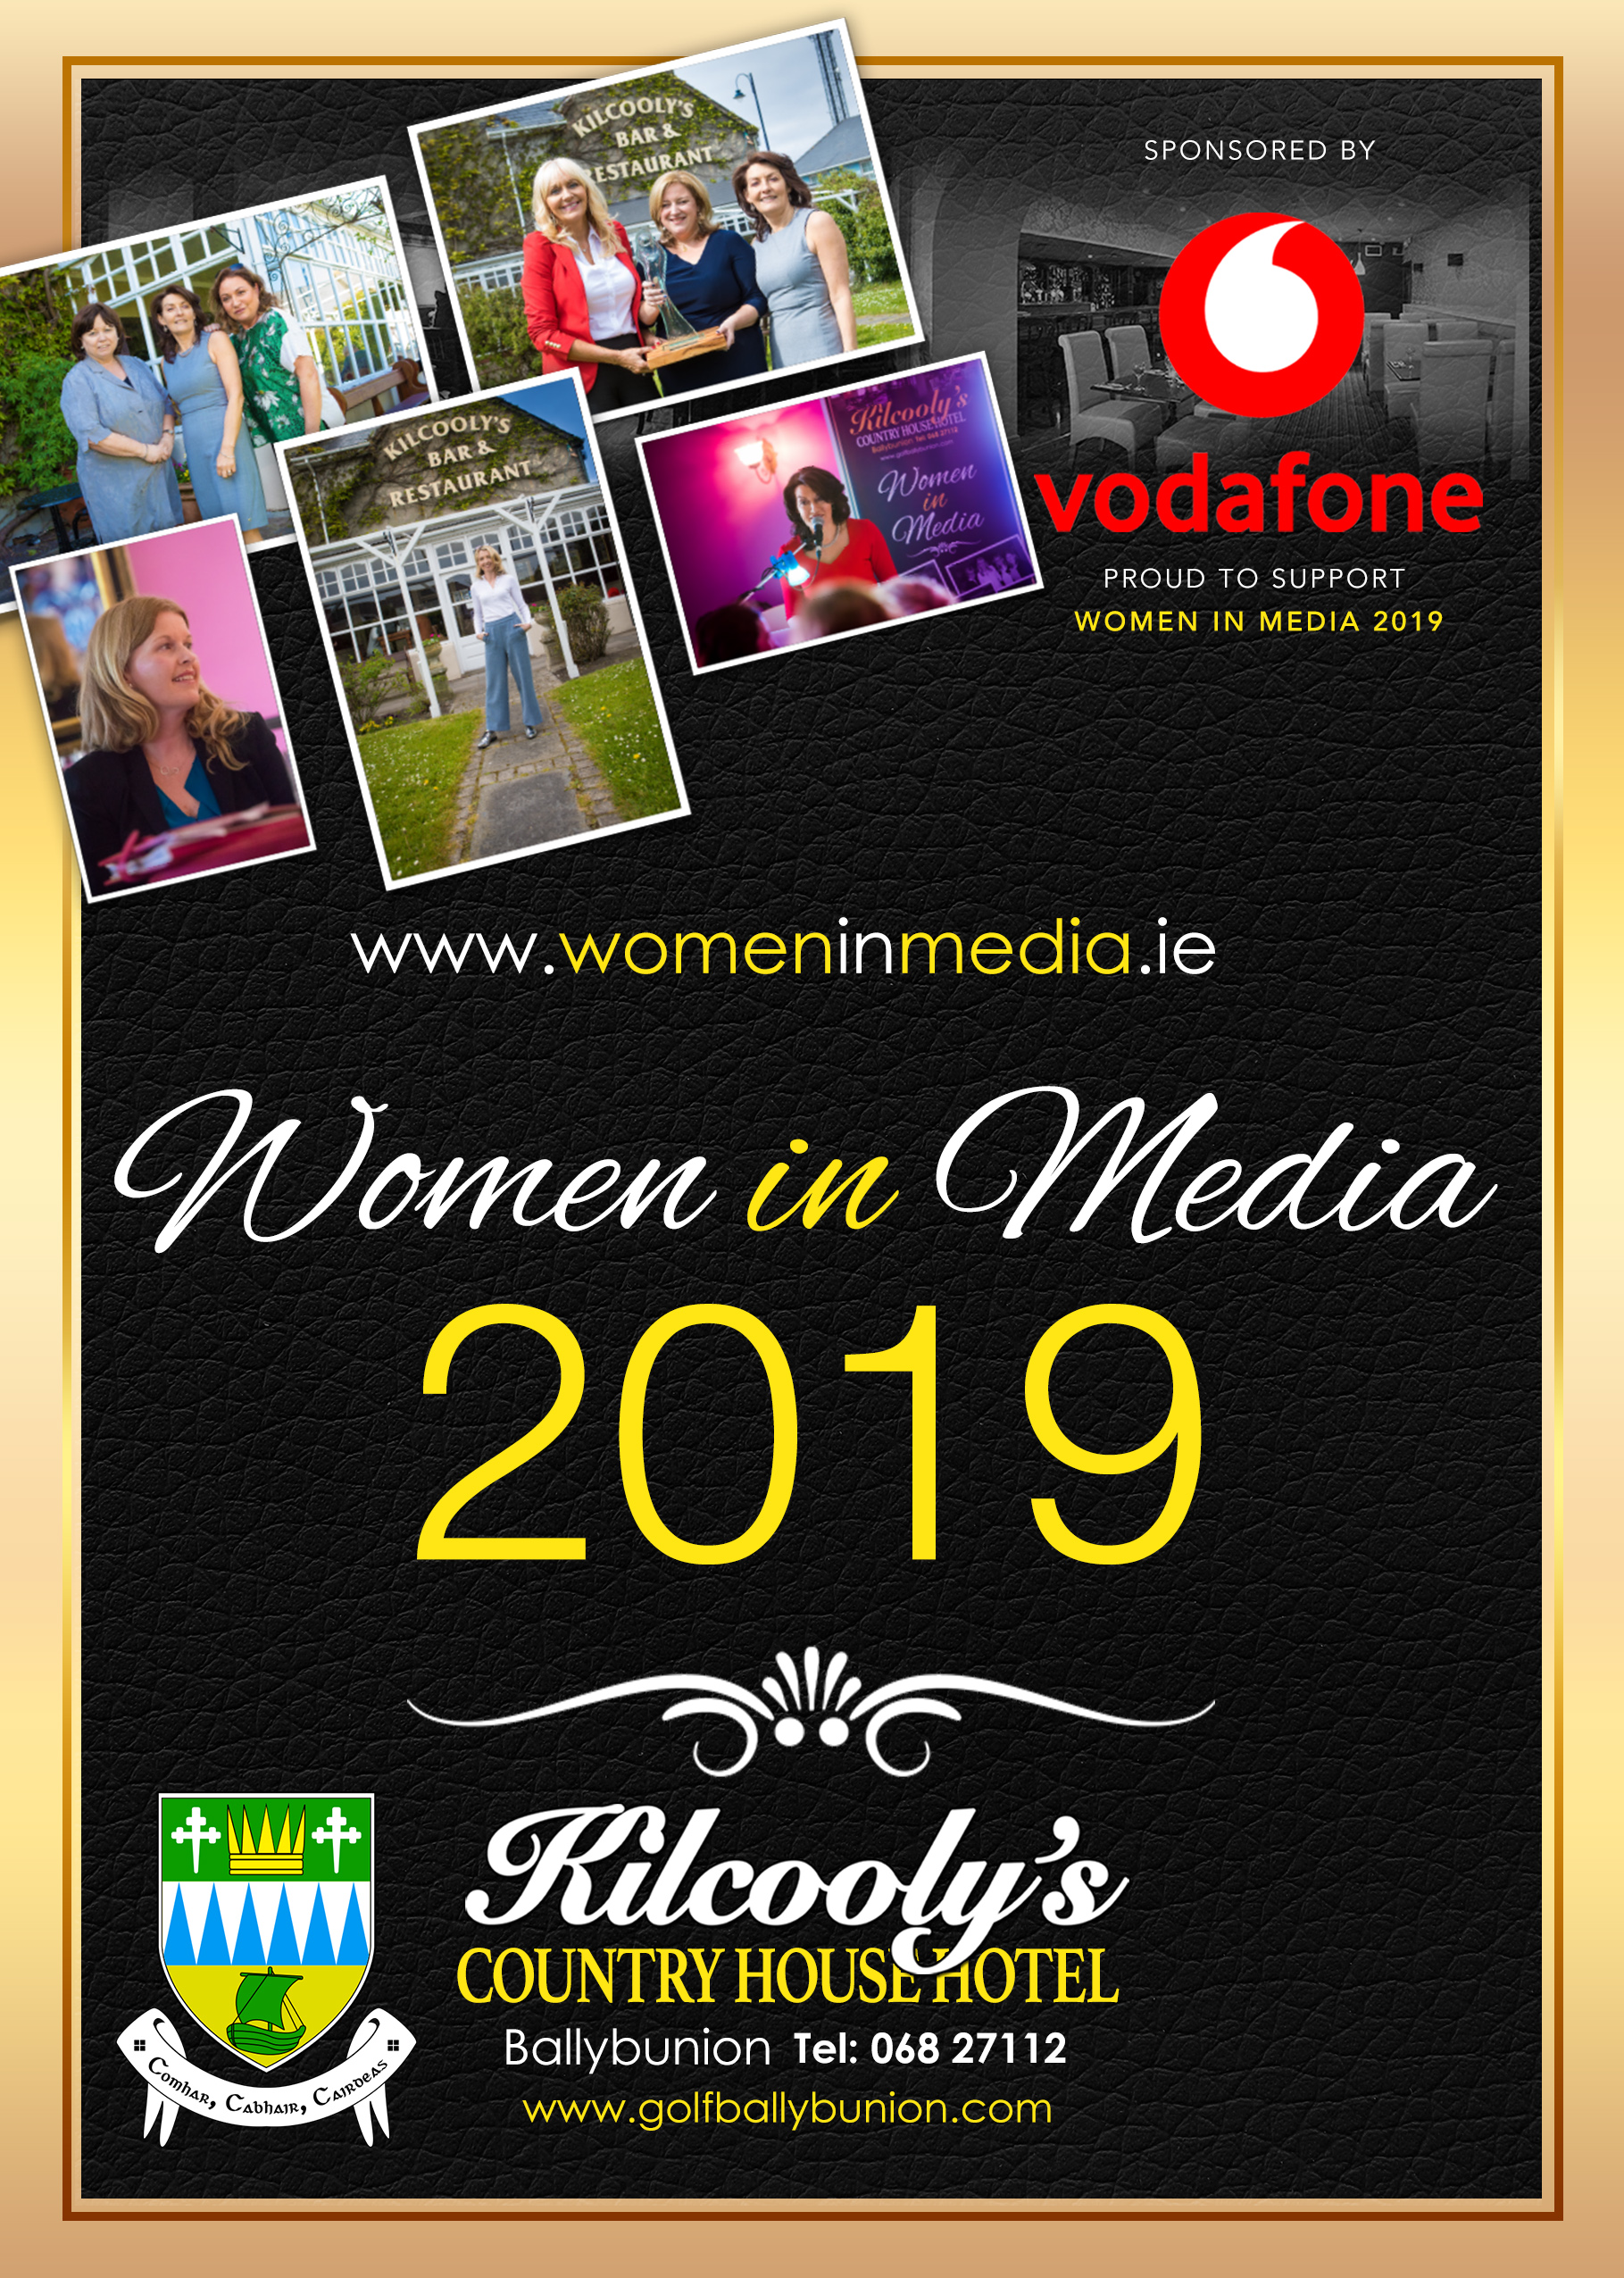 Annual Women in Media Conference takes place 26th – 28th April, Ballybunion.